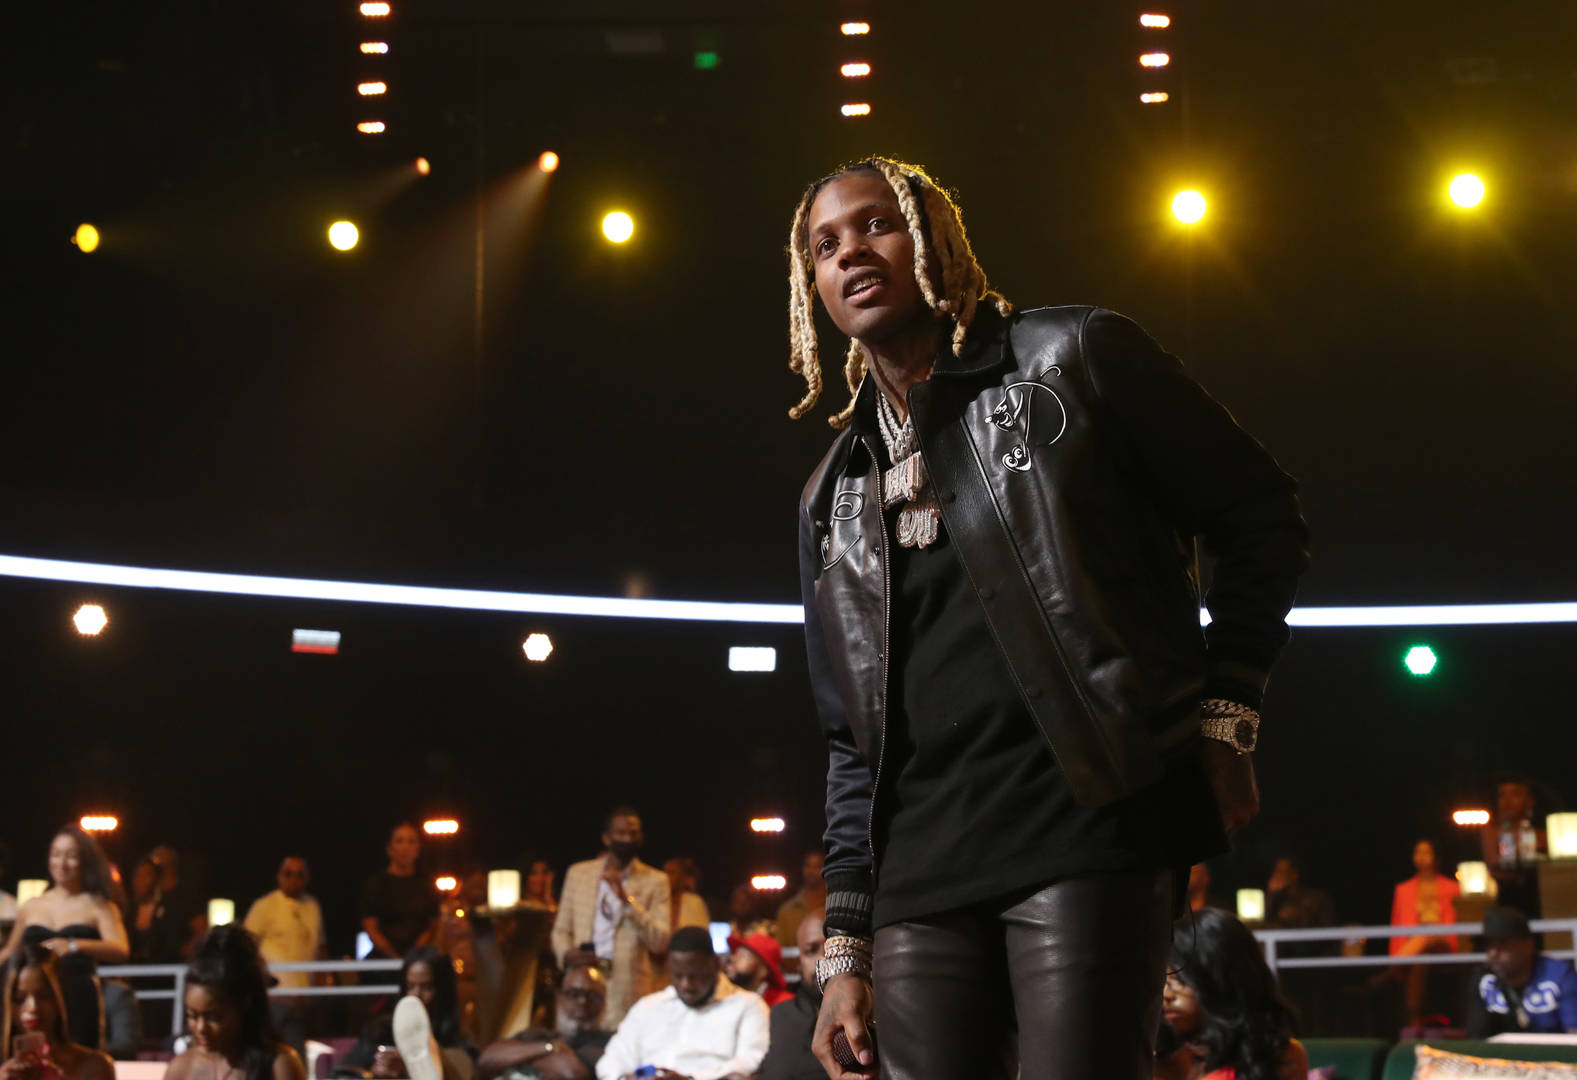 Lil Durk performs onstage at the BET Awards 2021 at Microsoft Theater on June 27, 2021 in Los Angeles, California.